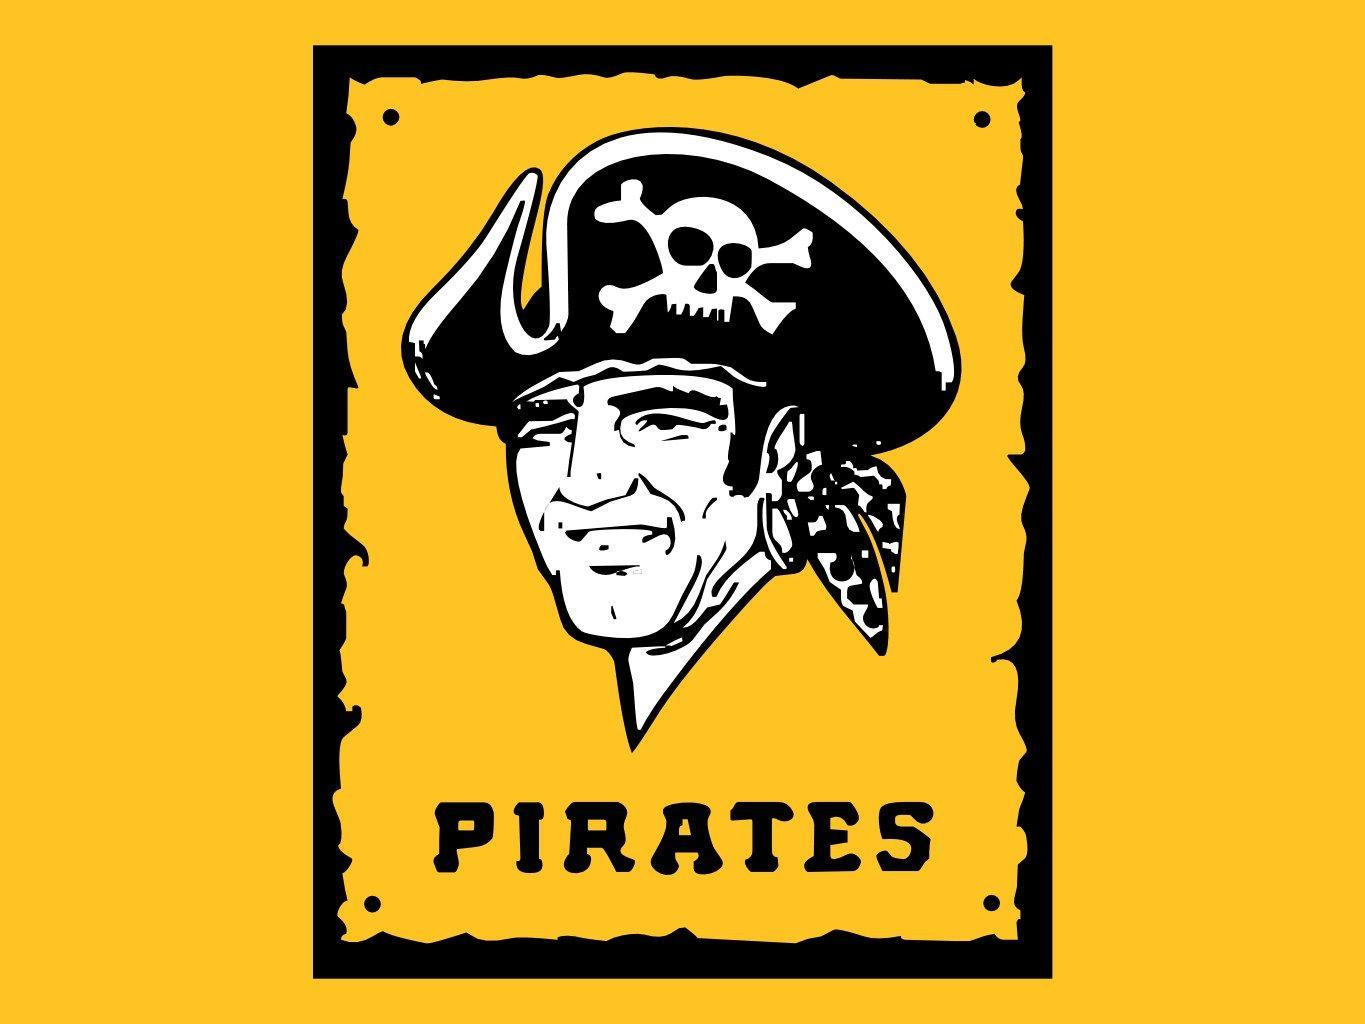 Pittsburgh Pirates Wallpaper Iphone 6 | Galleryimage.co